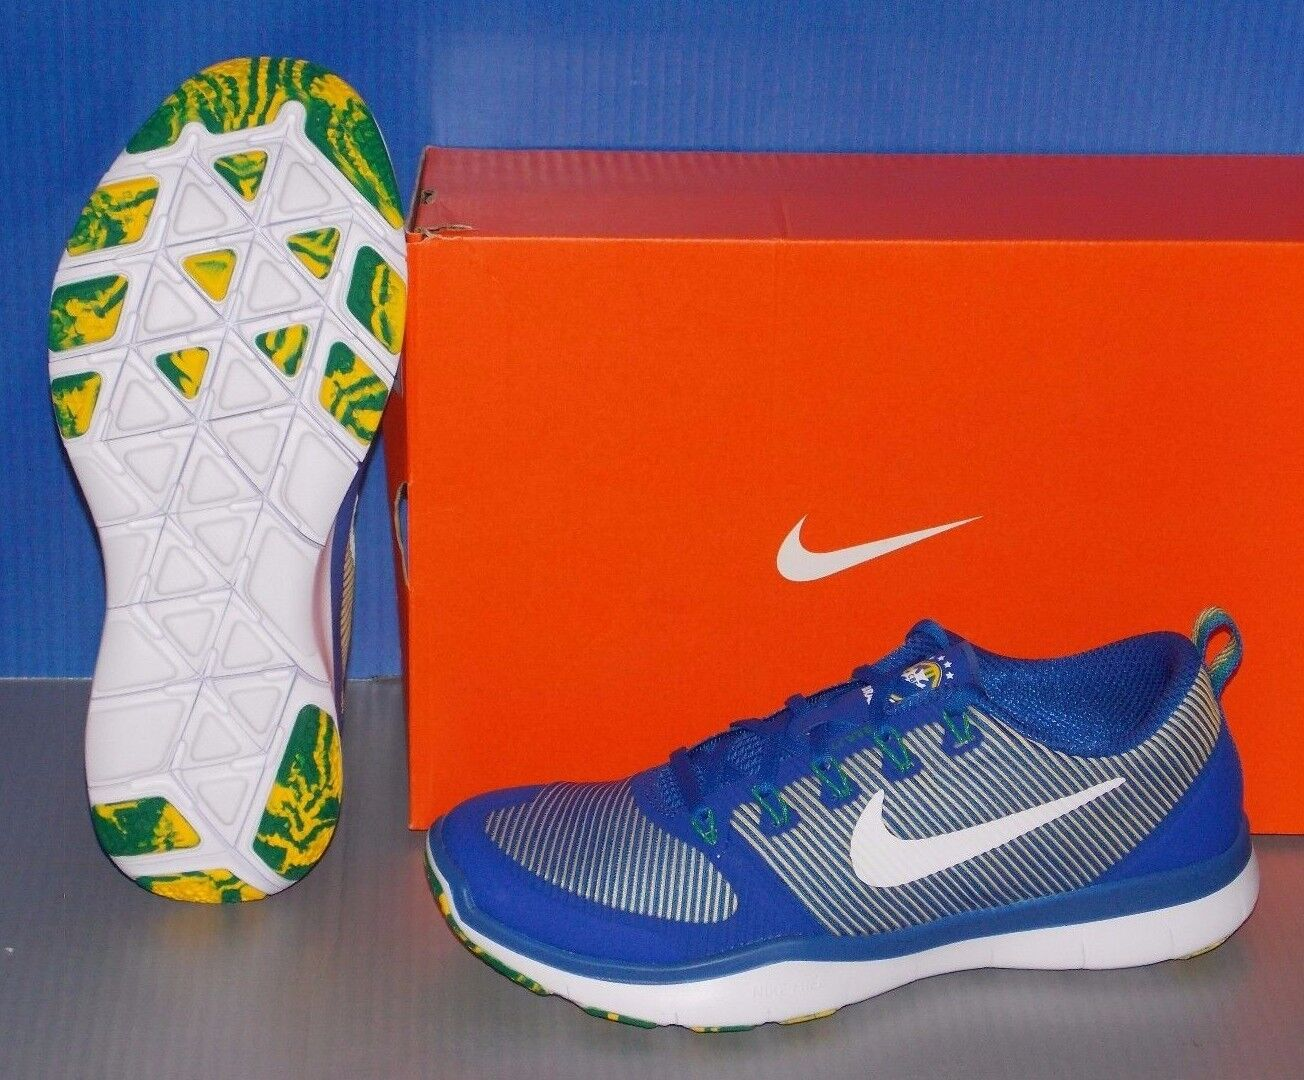 fe5bc6c97f7b ... MENS NIKE FREE TR VERSATILITY AMP in in in colors ROYAL WHITE MAZE GRN  SIZE 9 ...